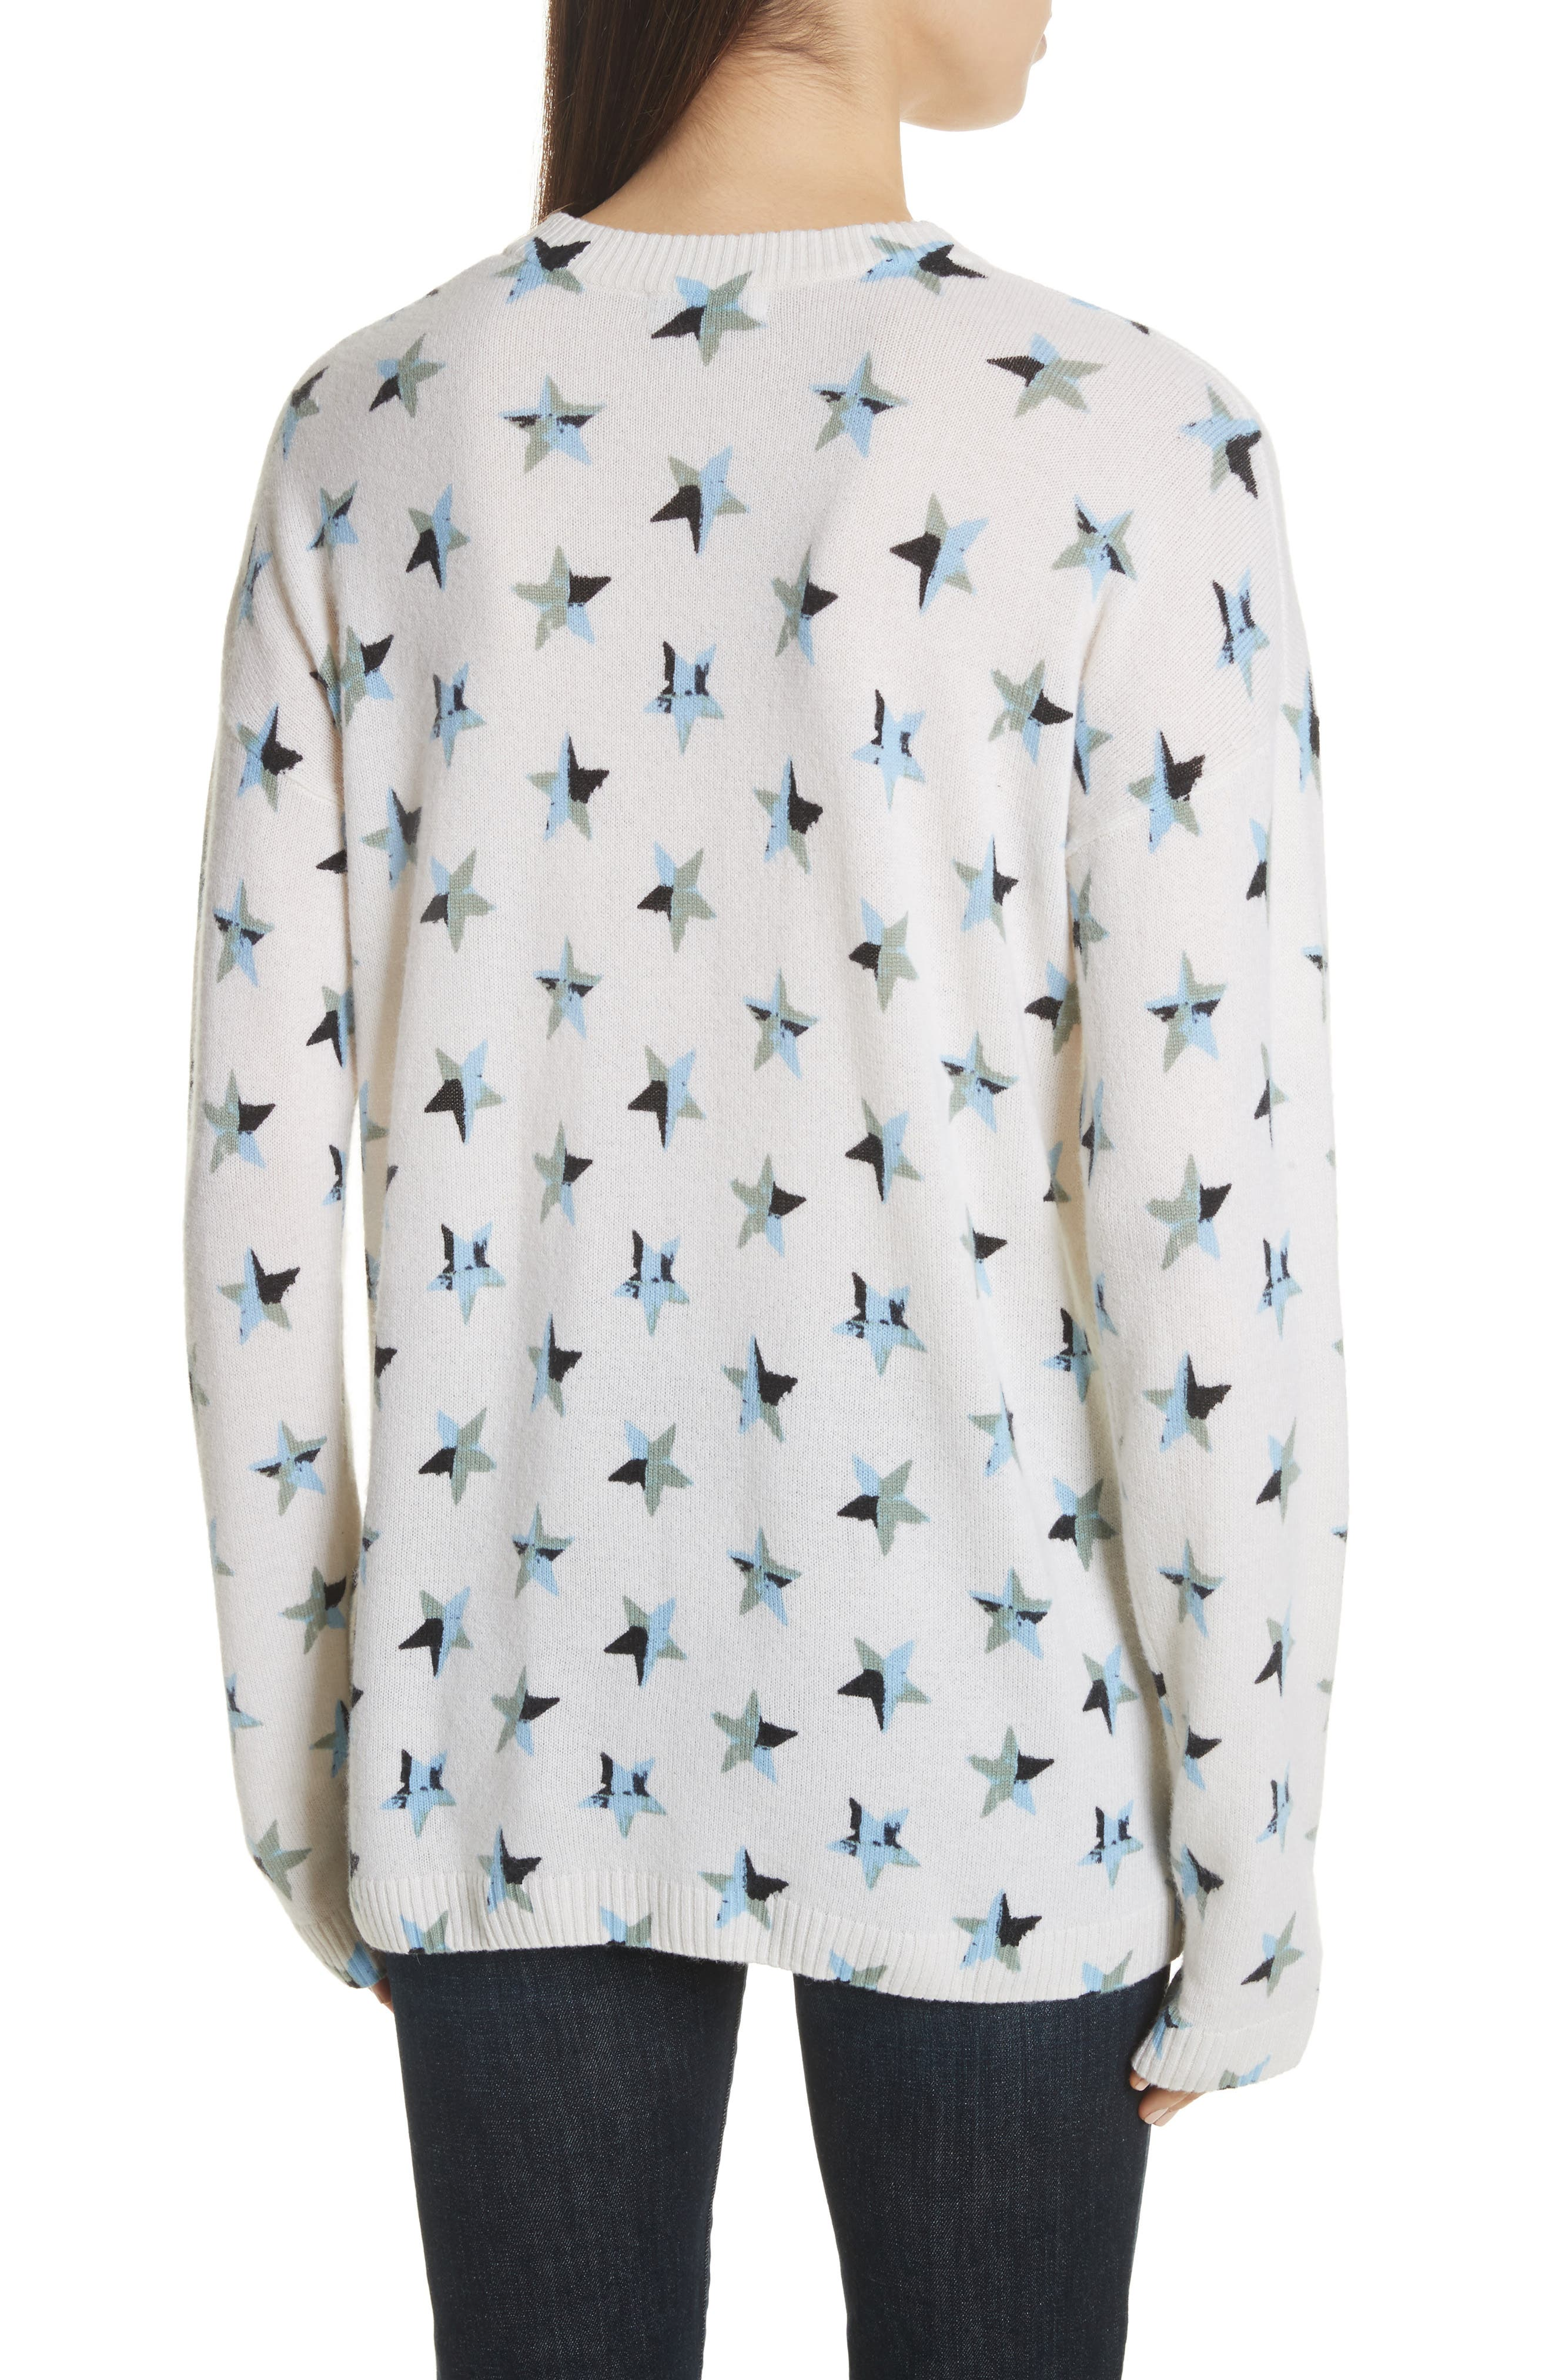 Bryce Star Print Cashmere Sweater,                             Alternate thumbnail 2, color,                             Ivory Multi